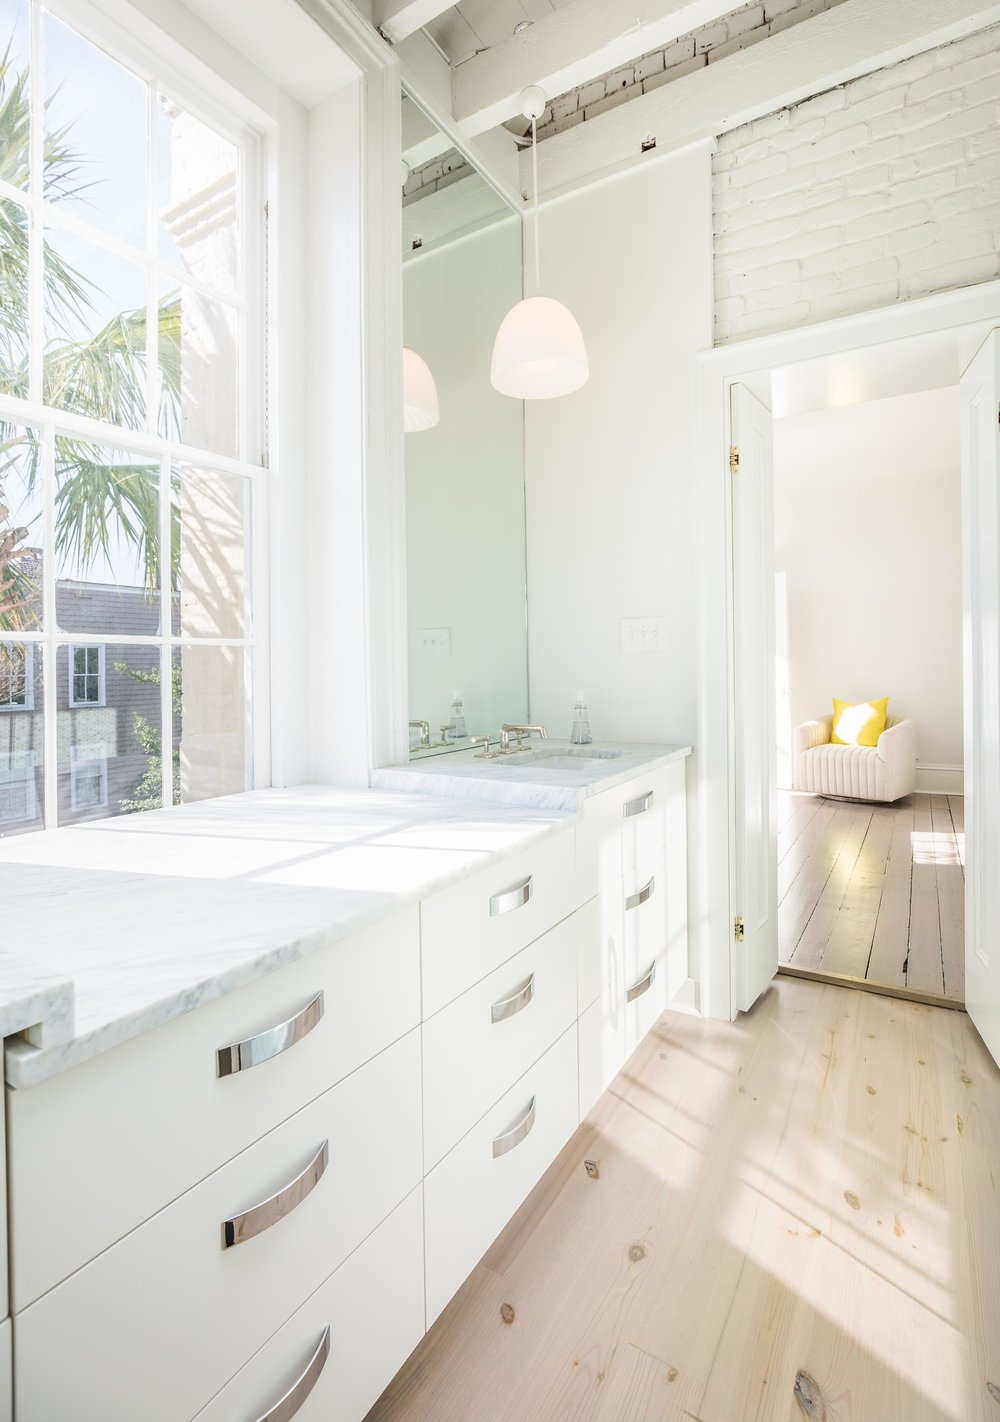 - A light-filled narrow bathroom becomes beautiful and functional with the addition of custom drawers and countertops. Photography by Ellis Creek Photography.